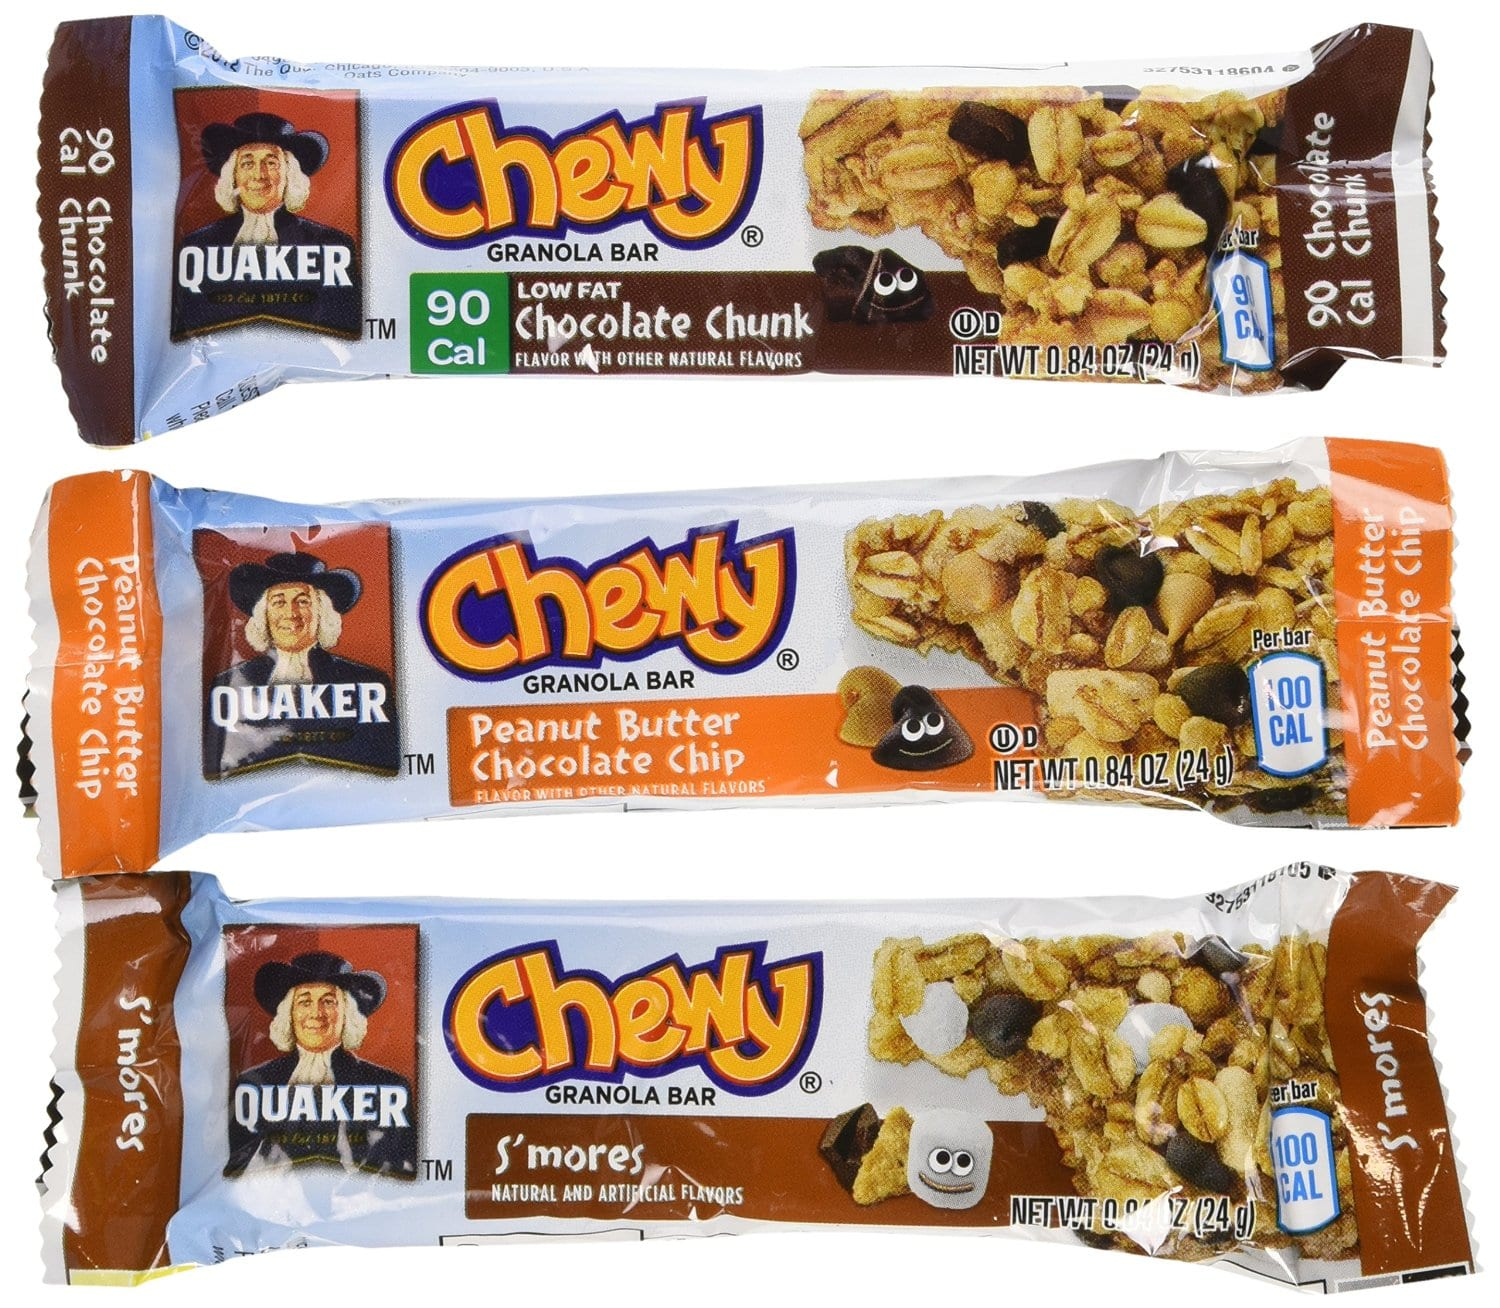 18-Pack Quaker Chewy Granola Bars (Variety Pack) $3.56. Free shipping. Amazon - S&S